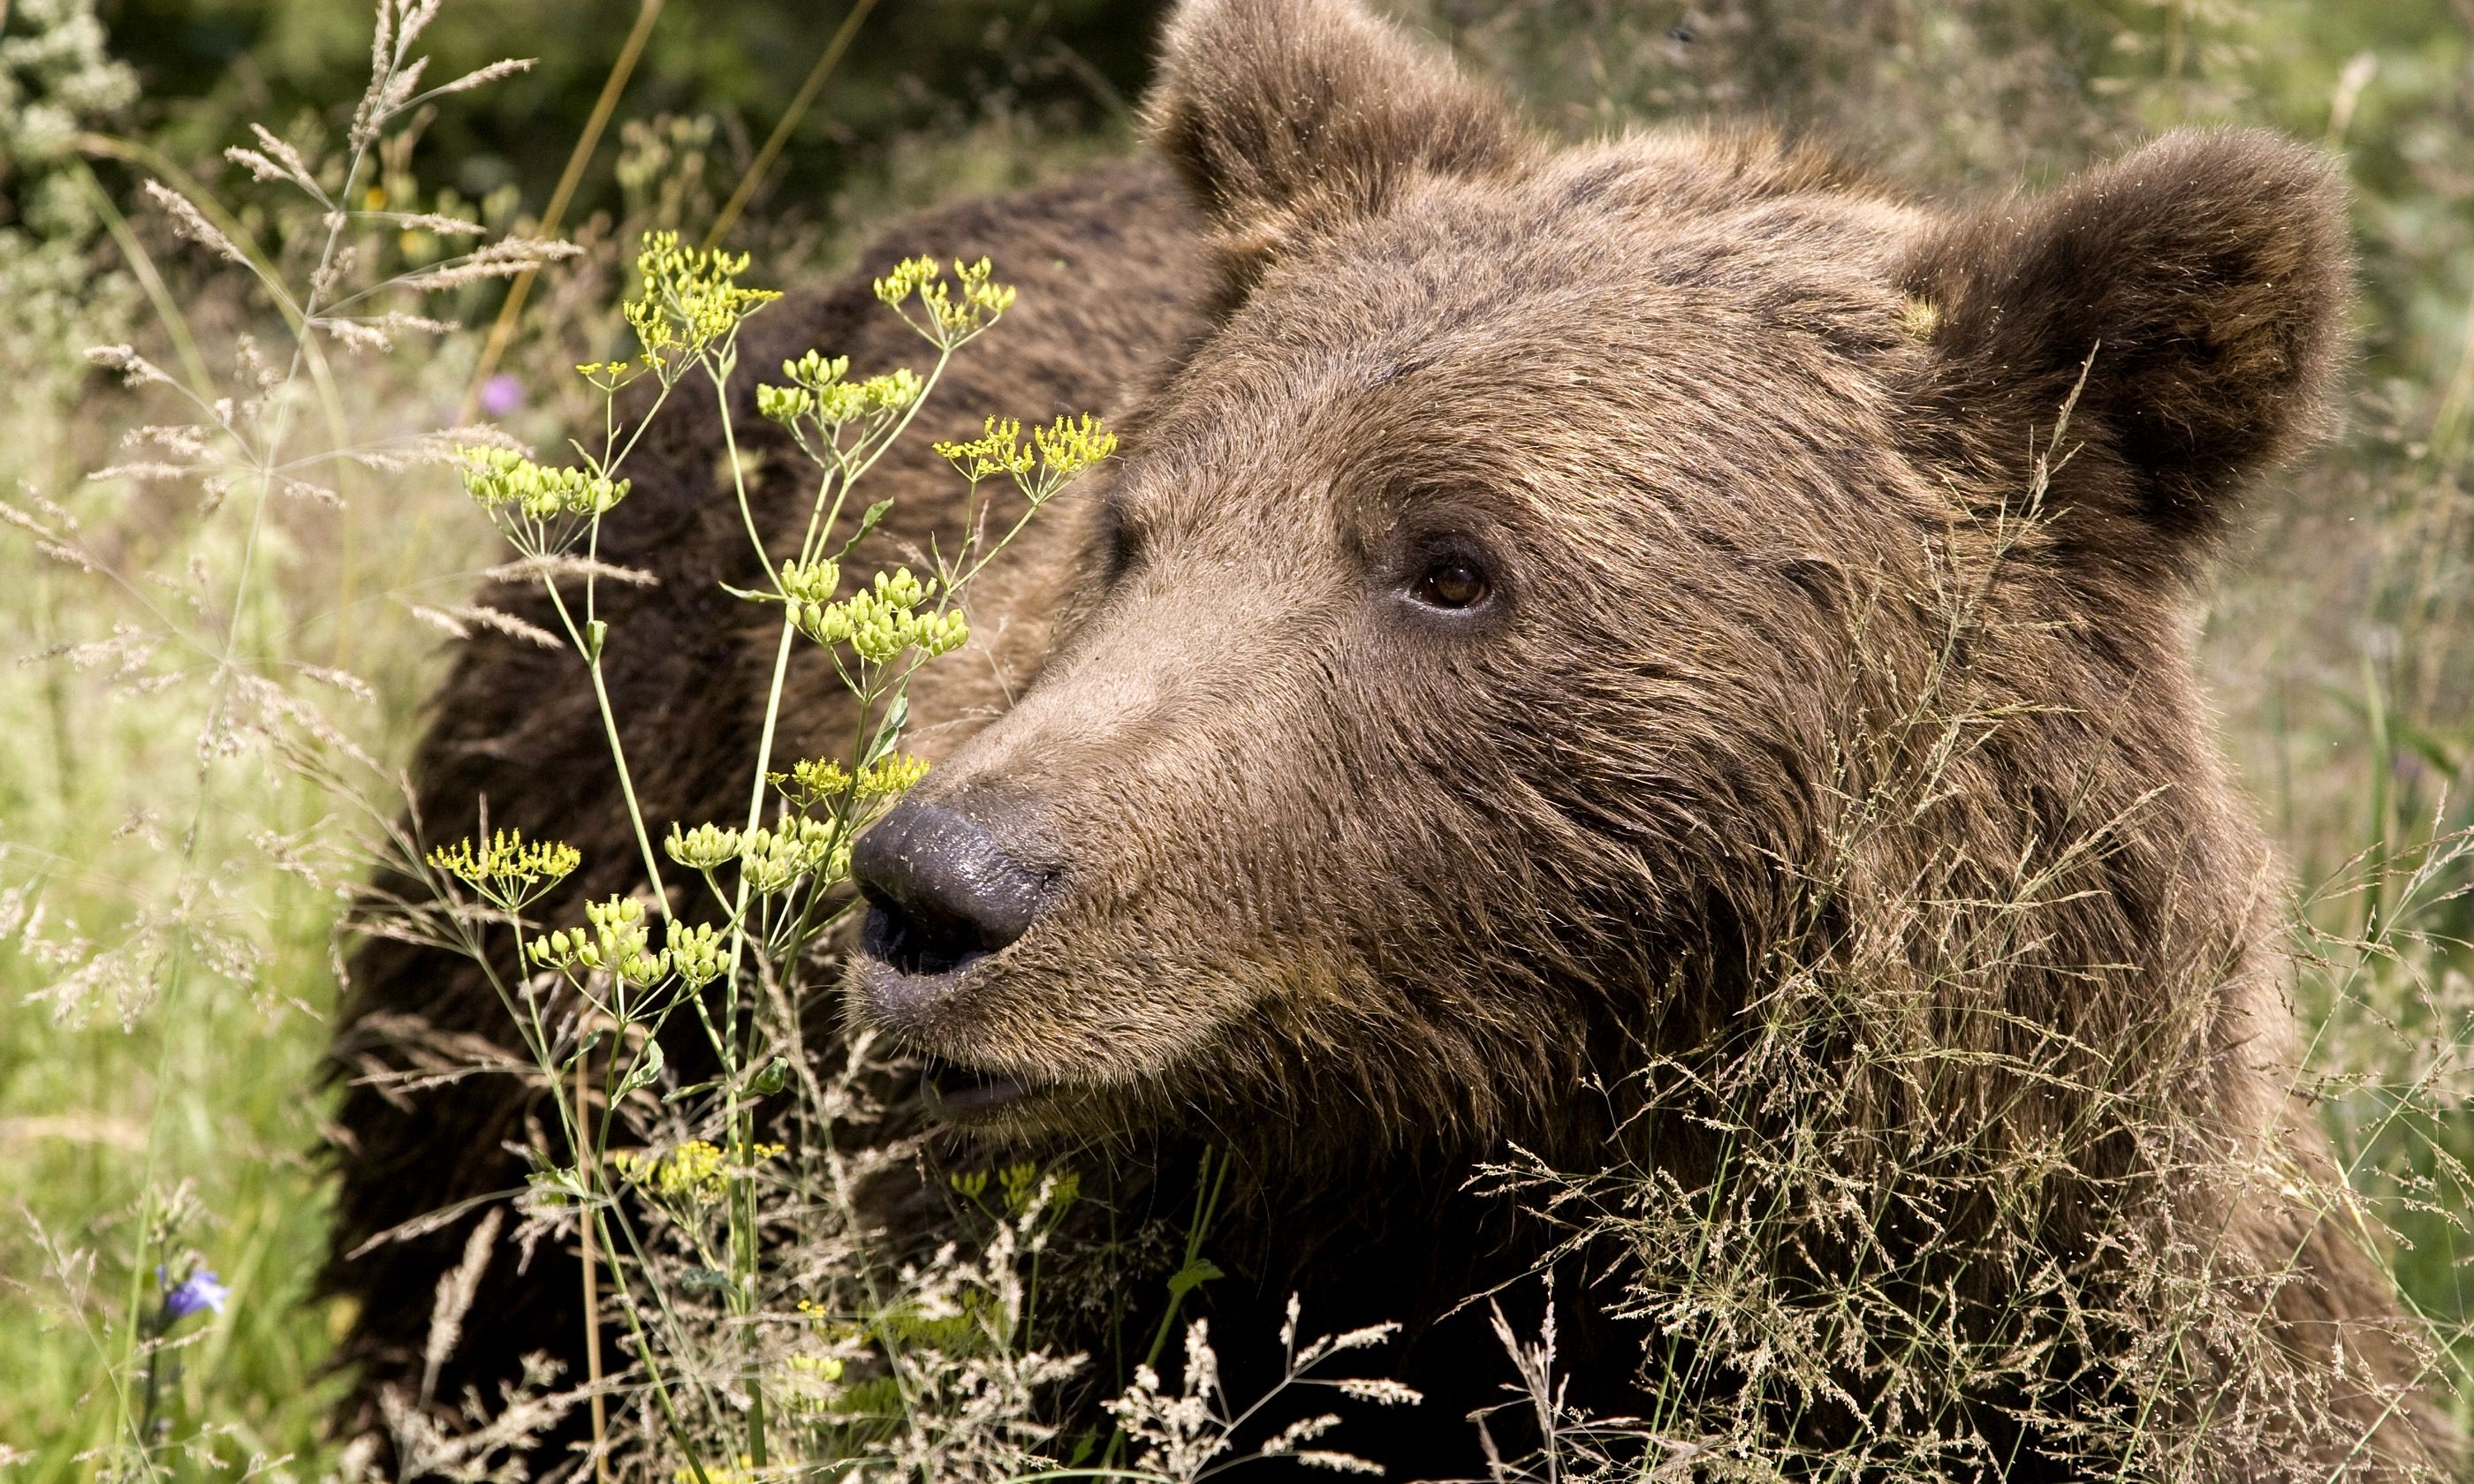 Wild bear in Romania (Dreamtime)